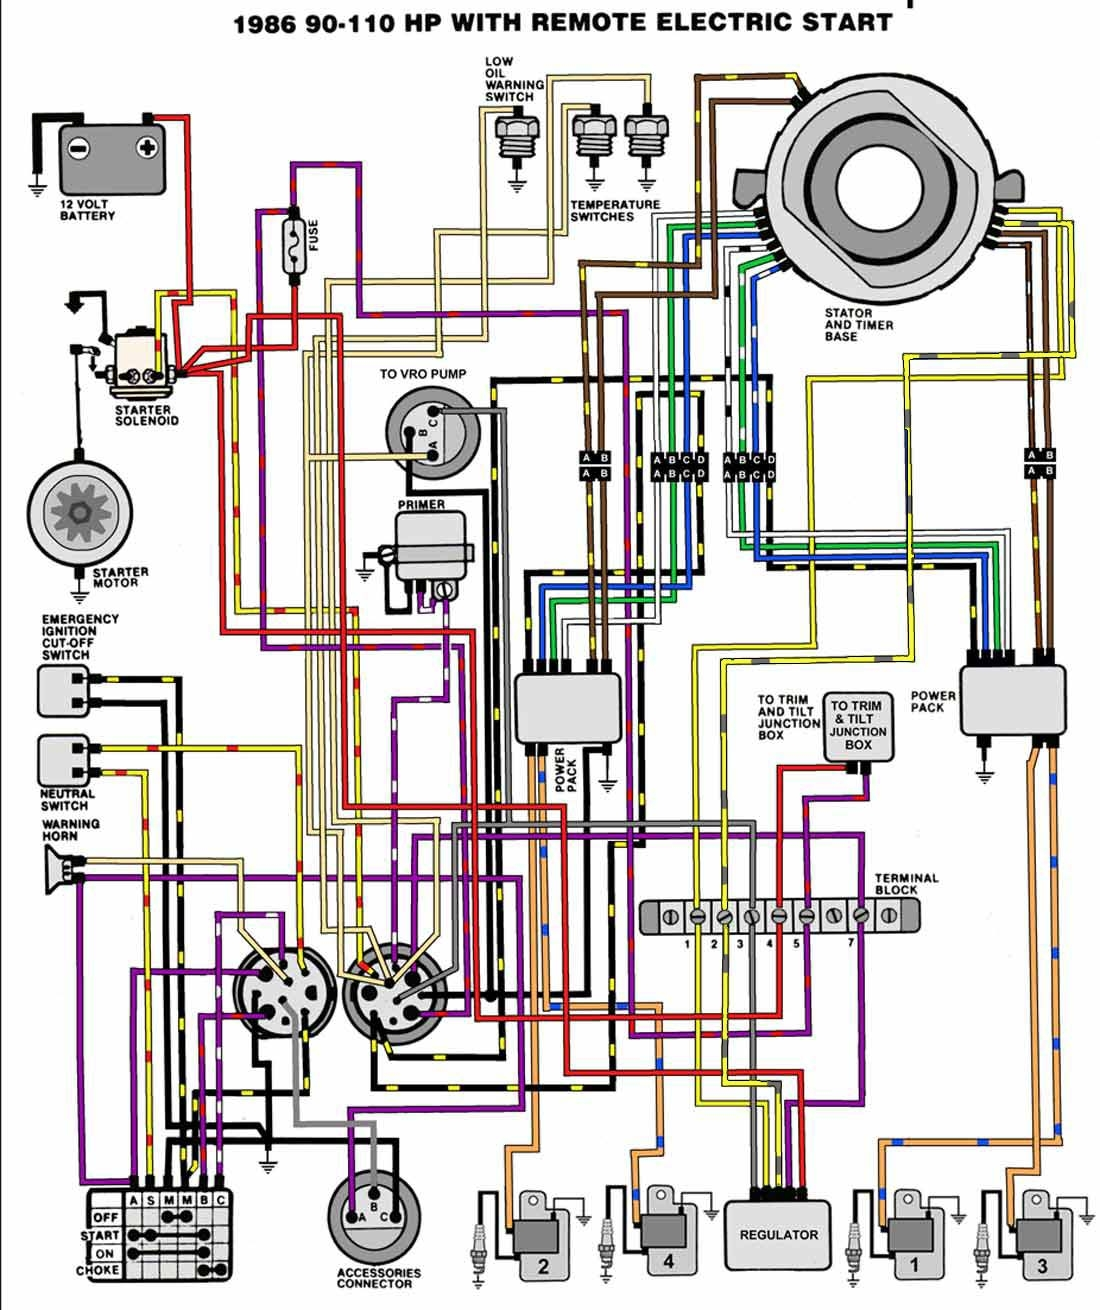 hight resolution of mercury outboard wiring diagram 1979 70 hp mercury outboard tach wiring diagram gallery 17g